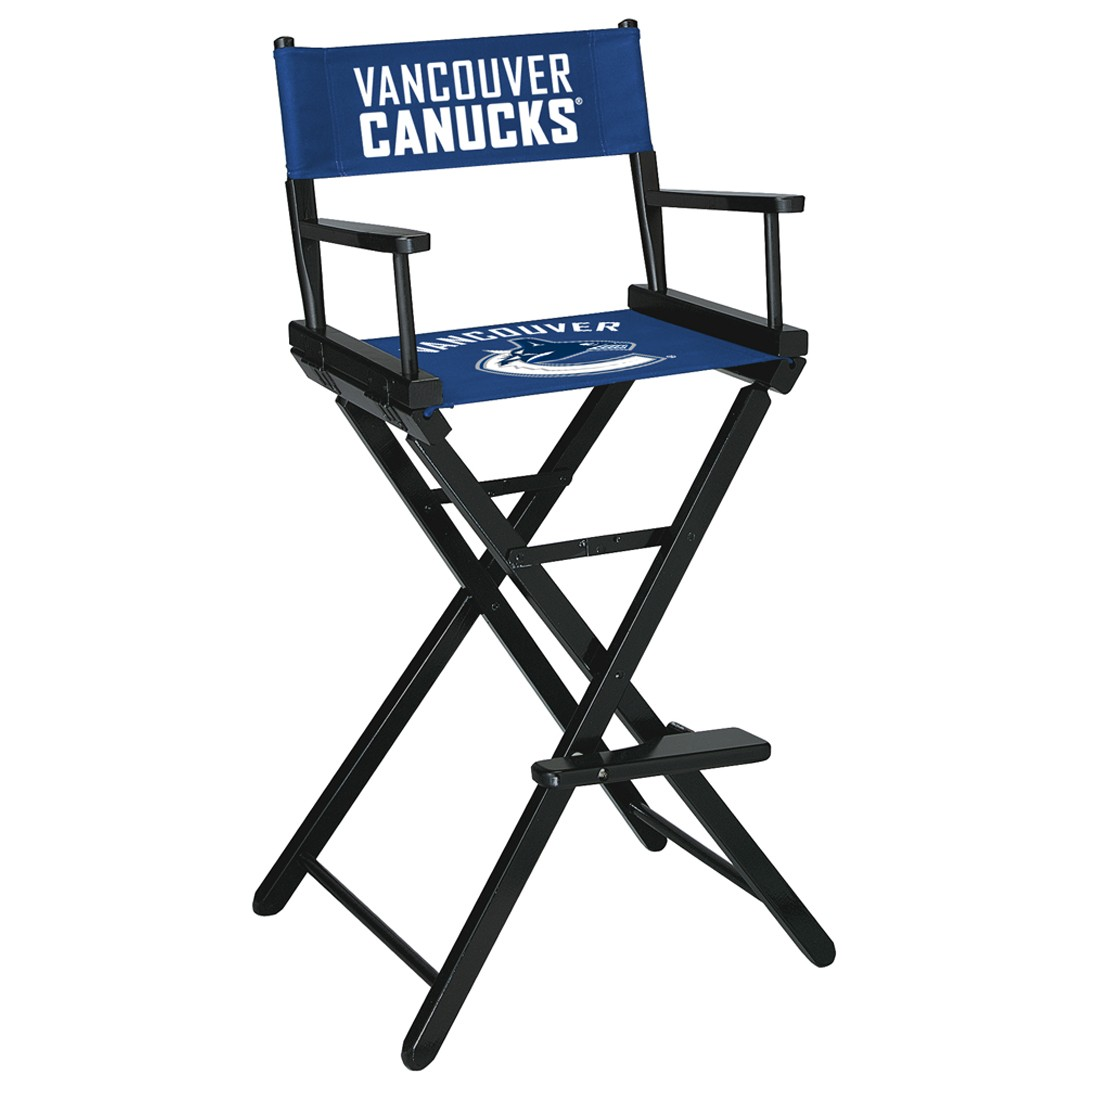 VANCOUVER CANUCKS® BAR HEIGHT DIRECTORS CHAIR